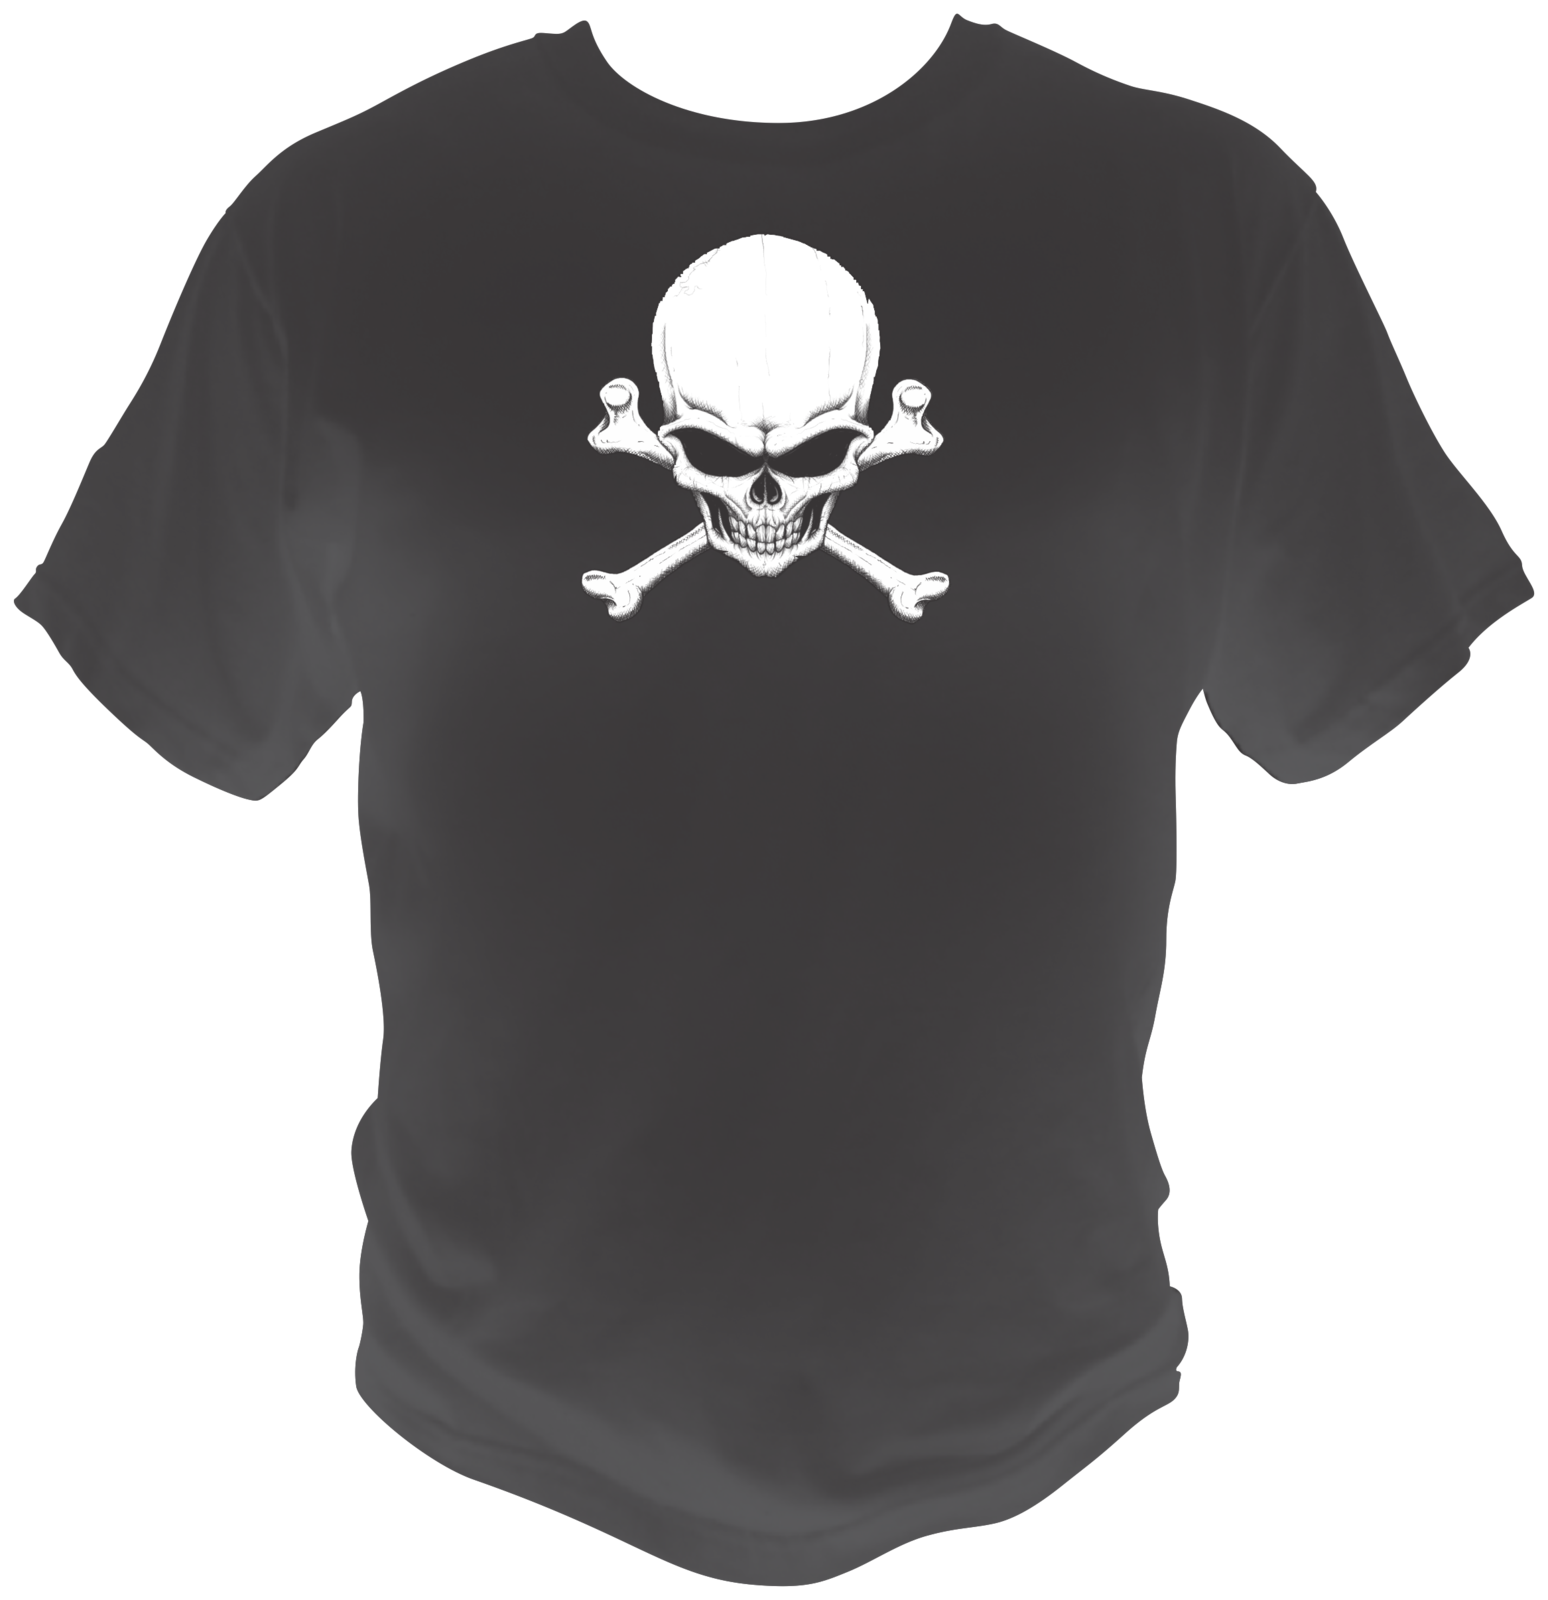 Crossbones danger skull black